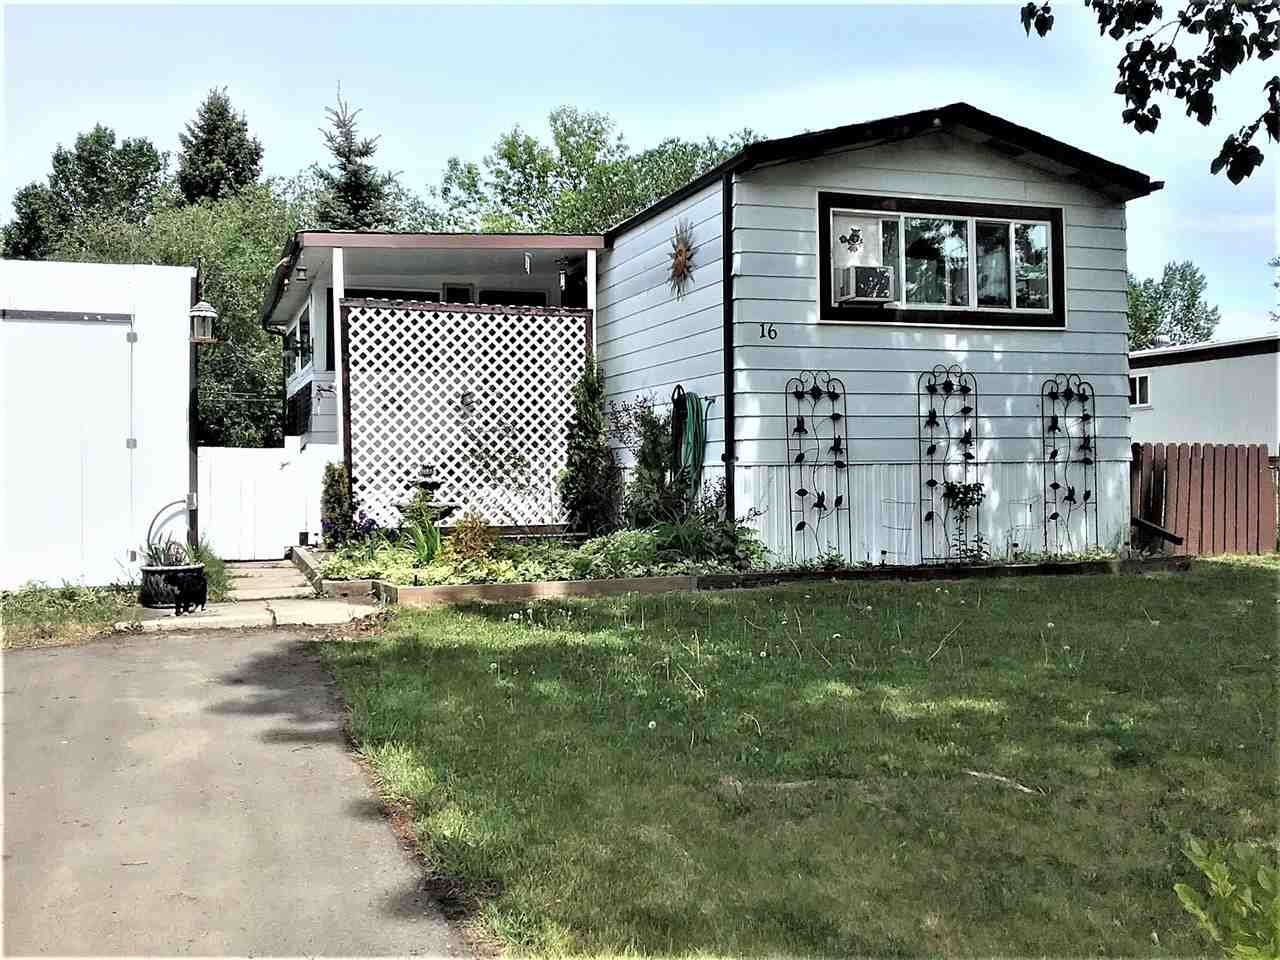 MLS® listing #E4151387 for sale located at 16 The Parkway